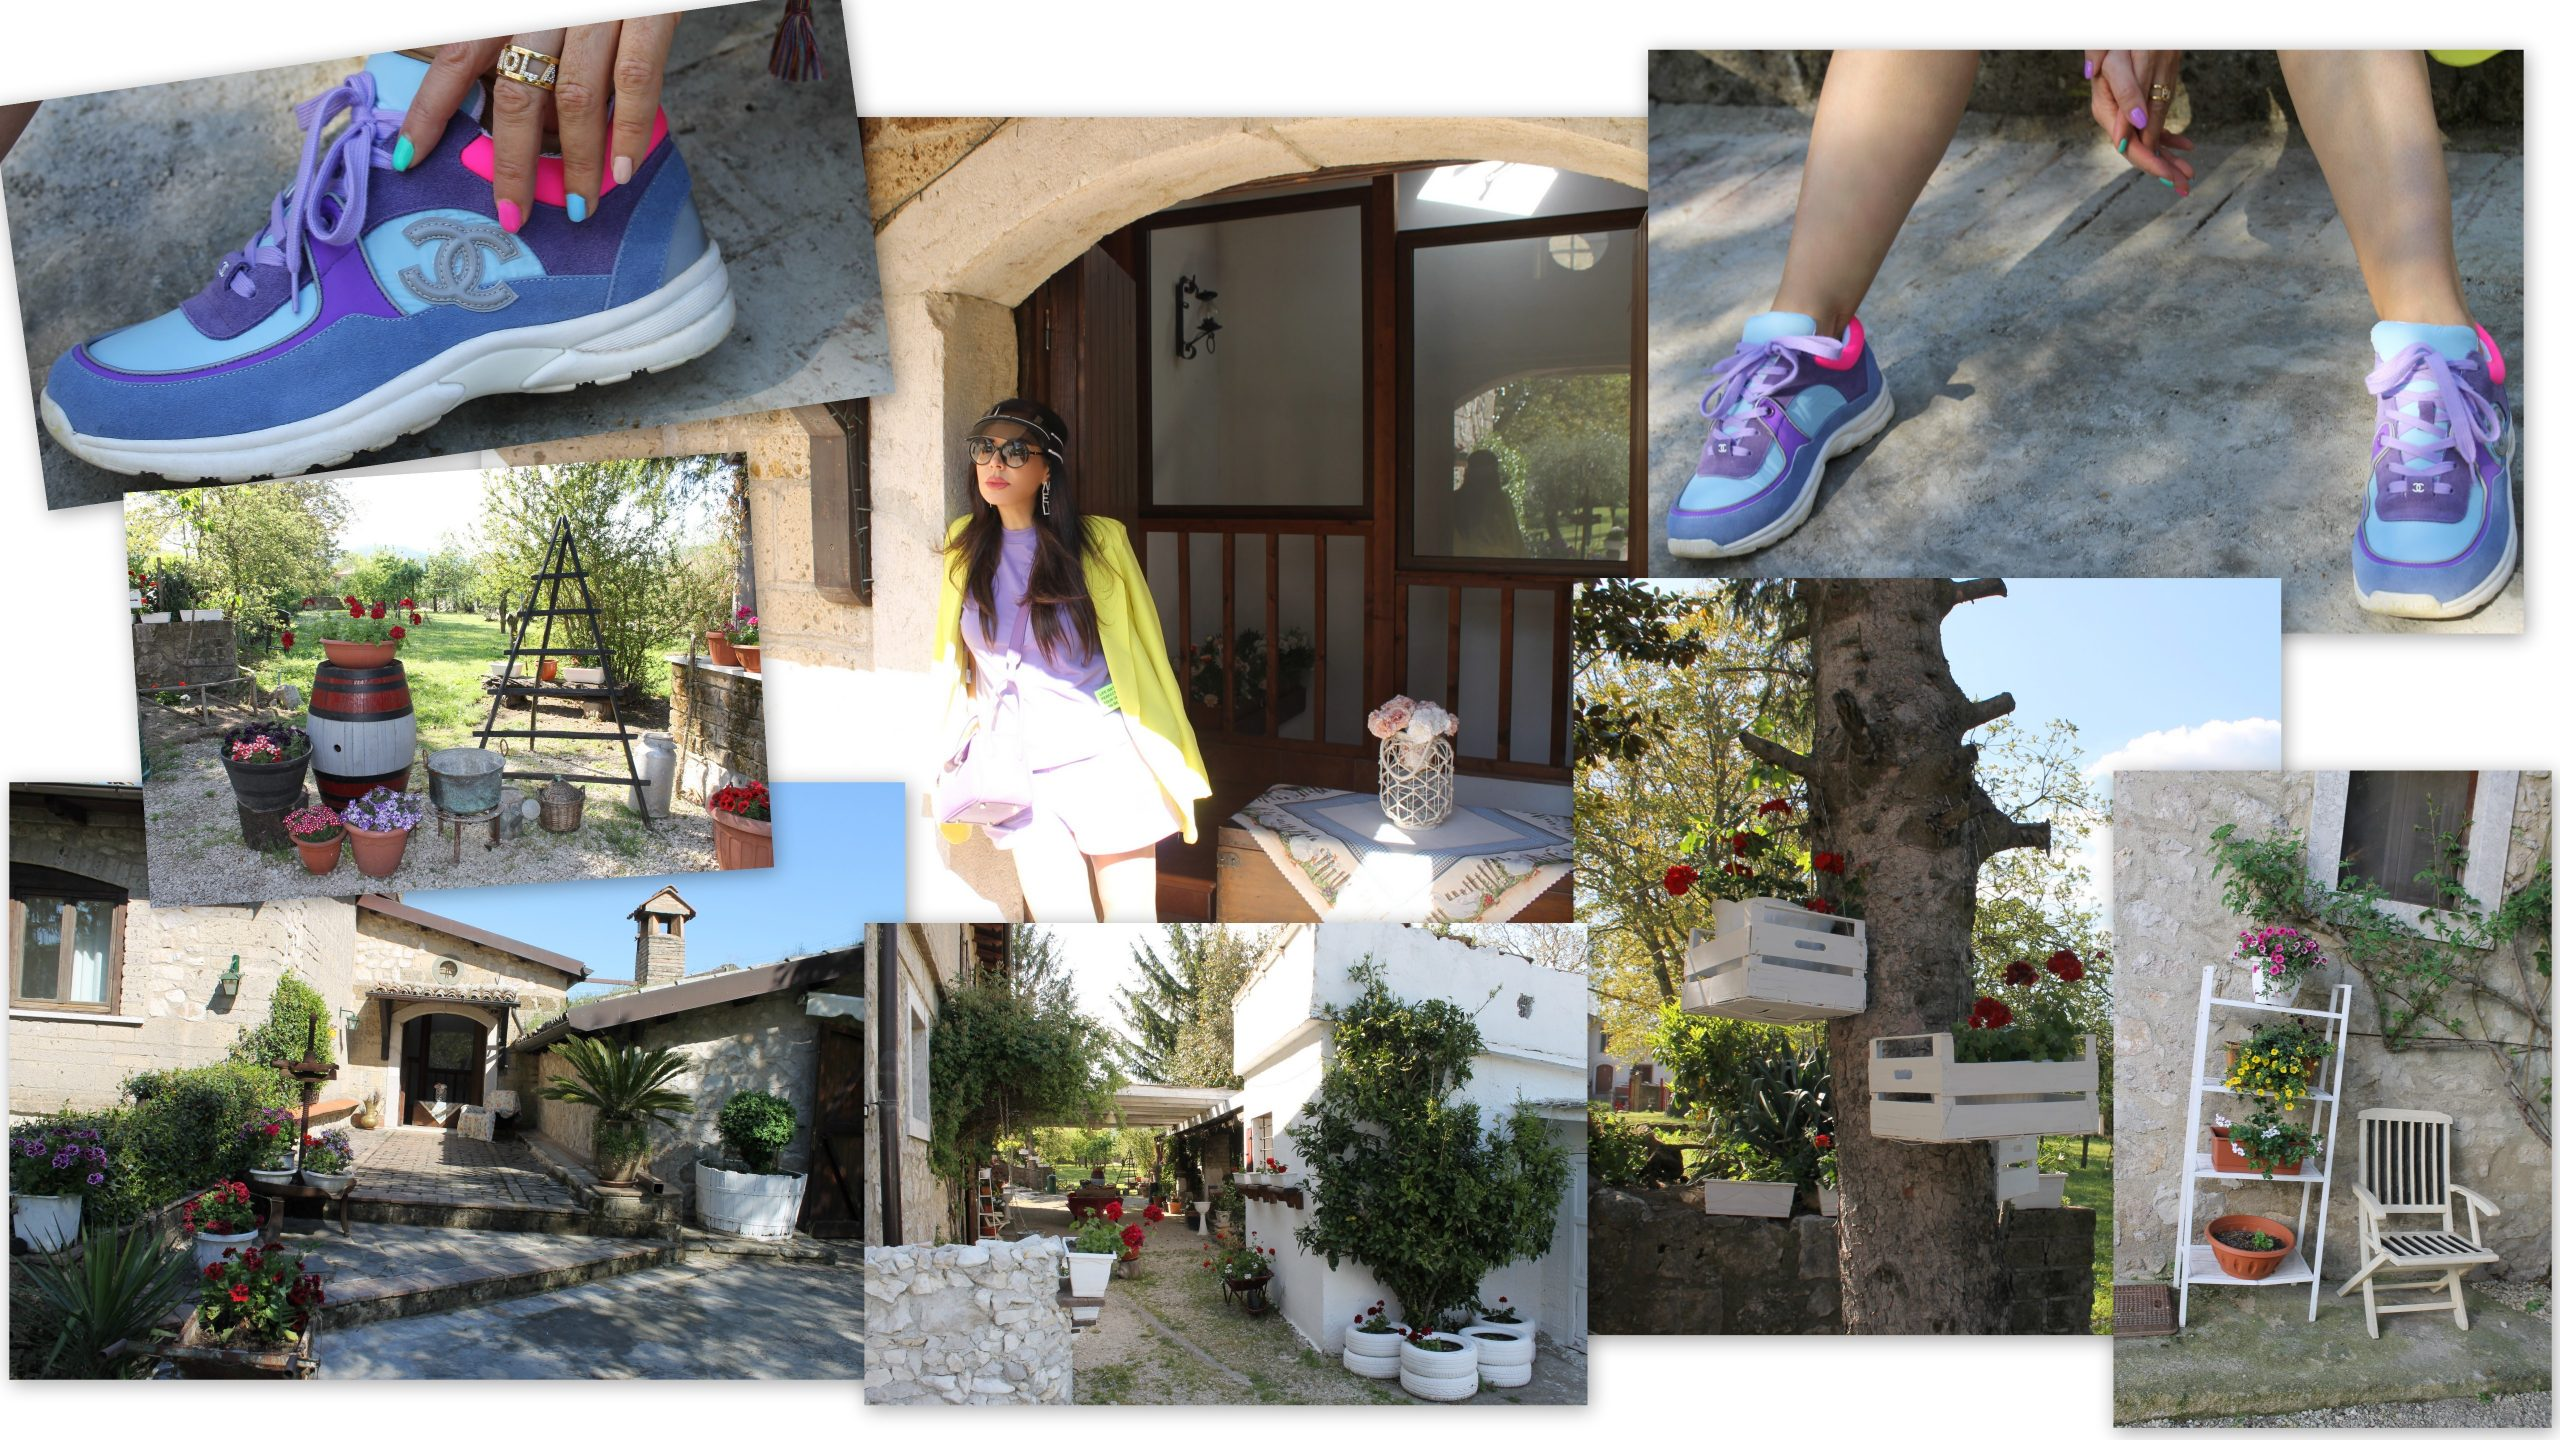 sporty comfy outfit lilac and yellow look chenel sneakers Paola Lauretano